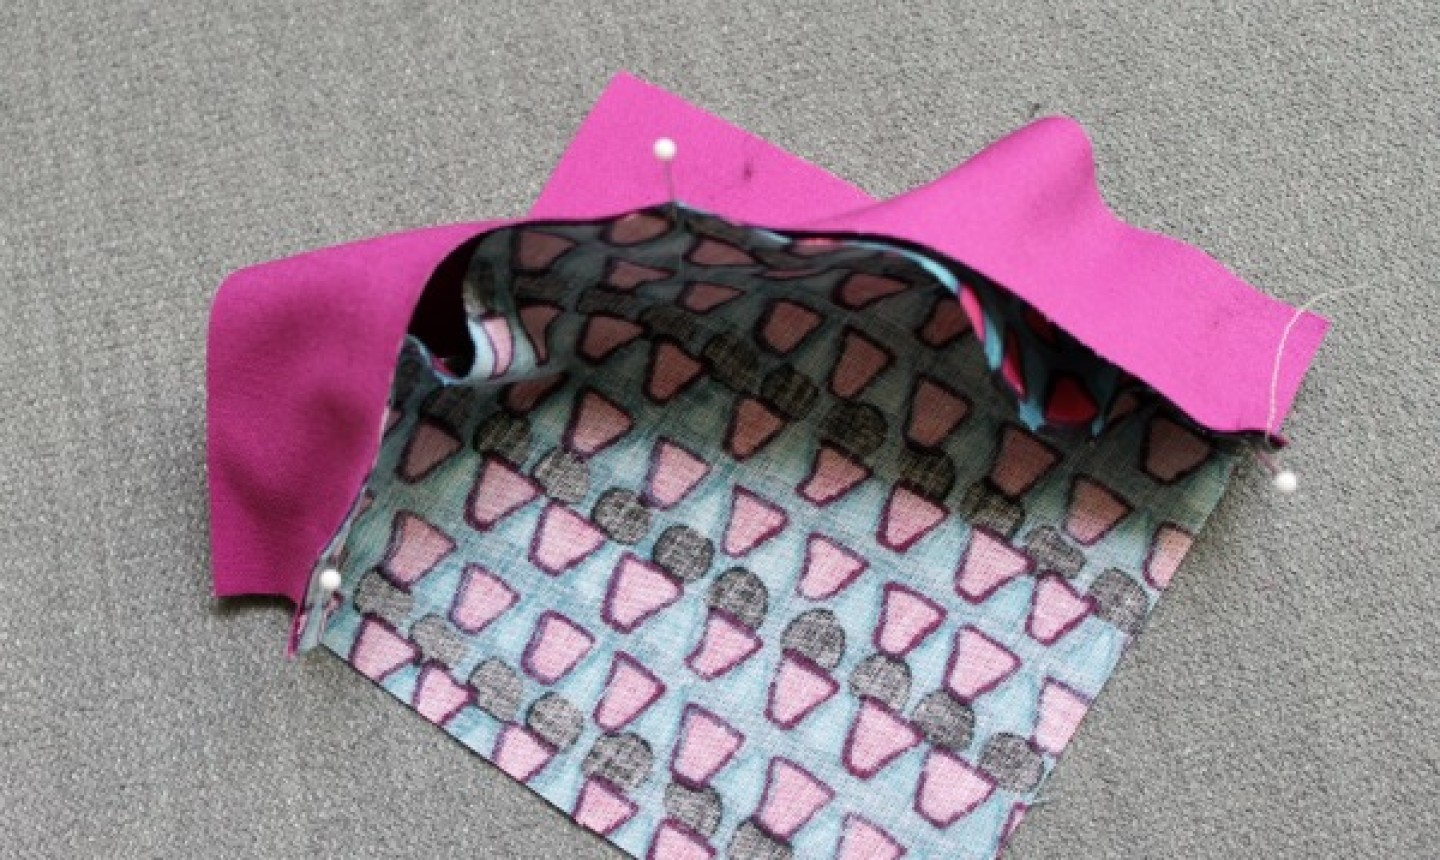 piecing two curved fabric pieces together